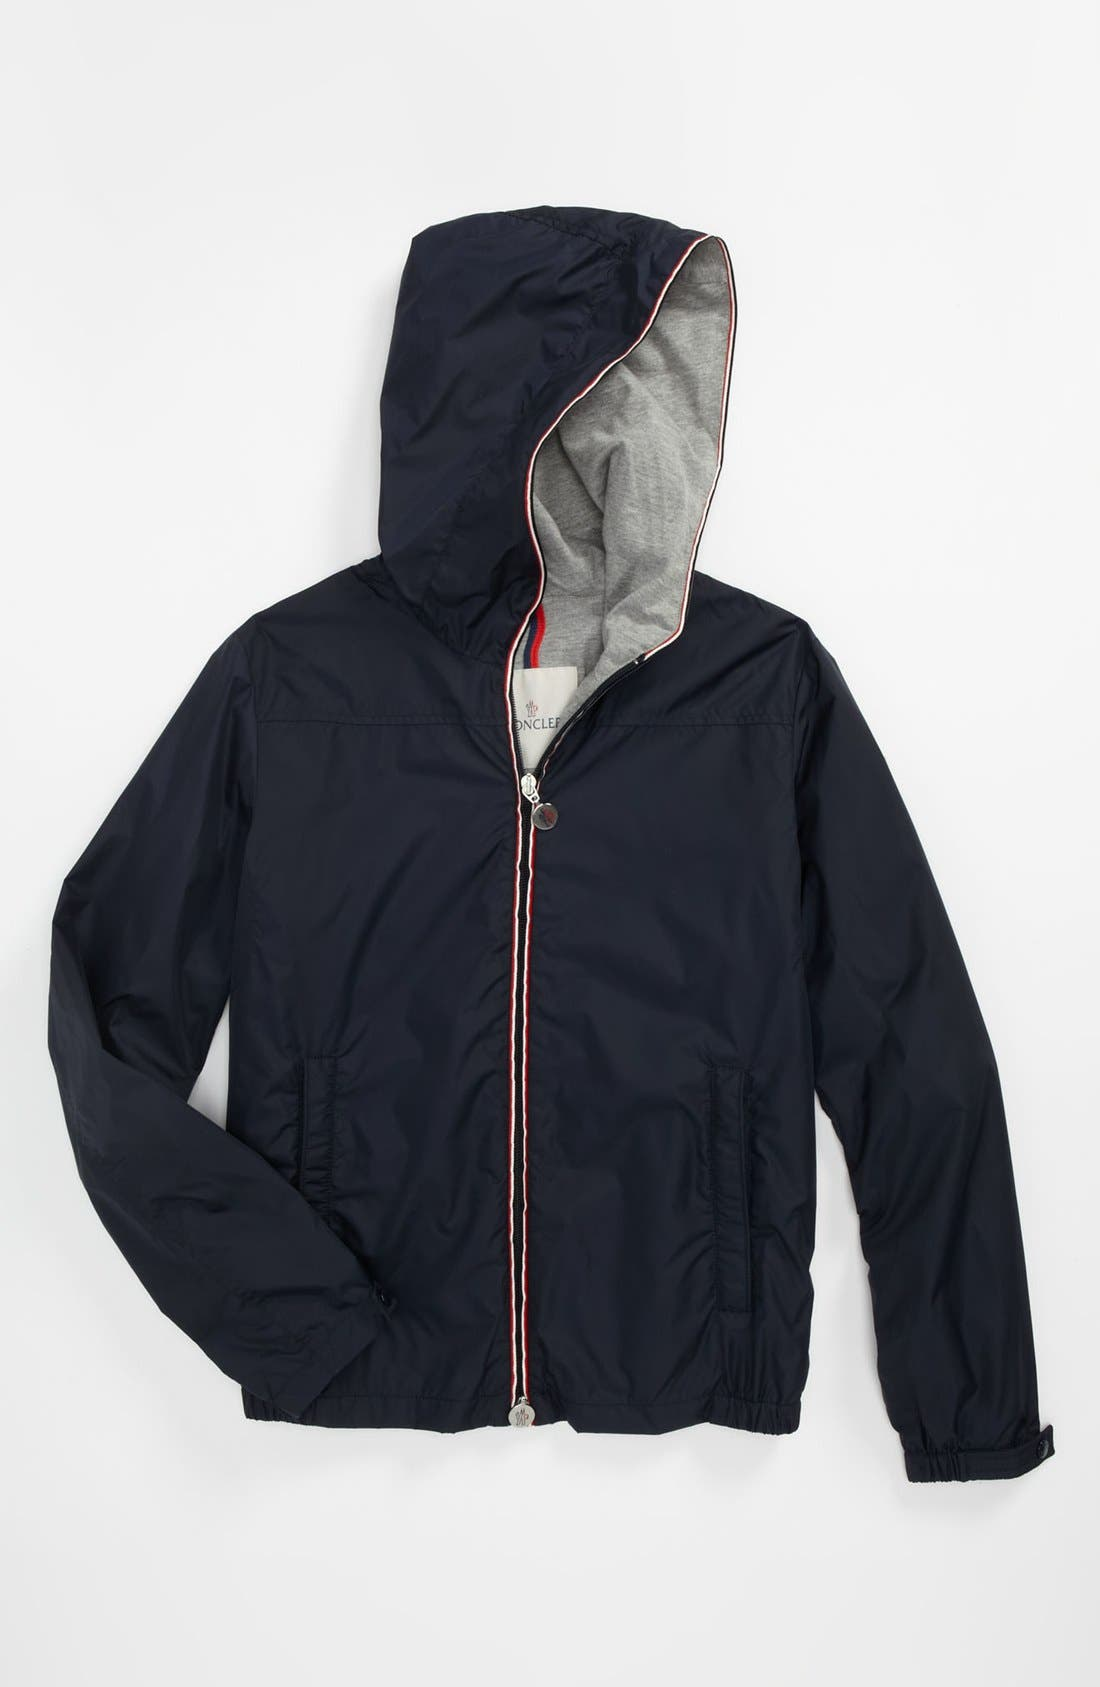 Alternate Image 1 Selected - Moncler 'Urville' Jacket (Toddler, Little Boys & Big Boys)